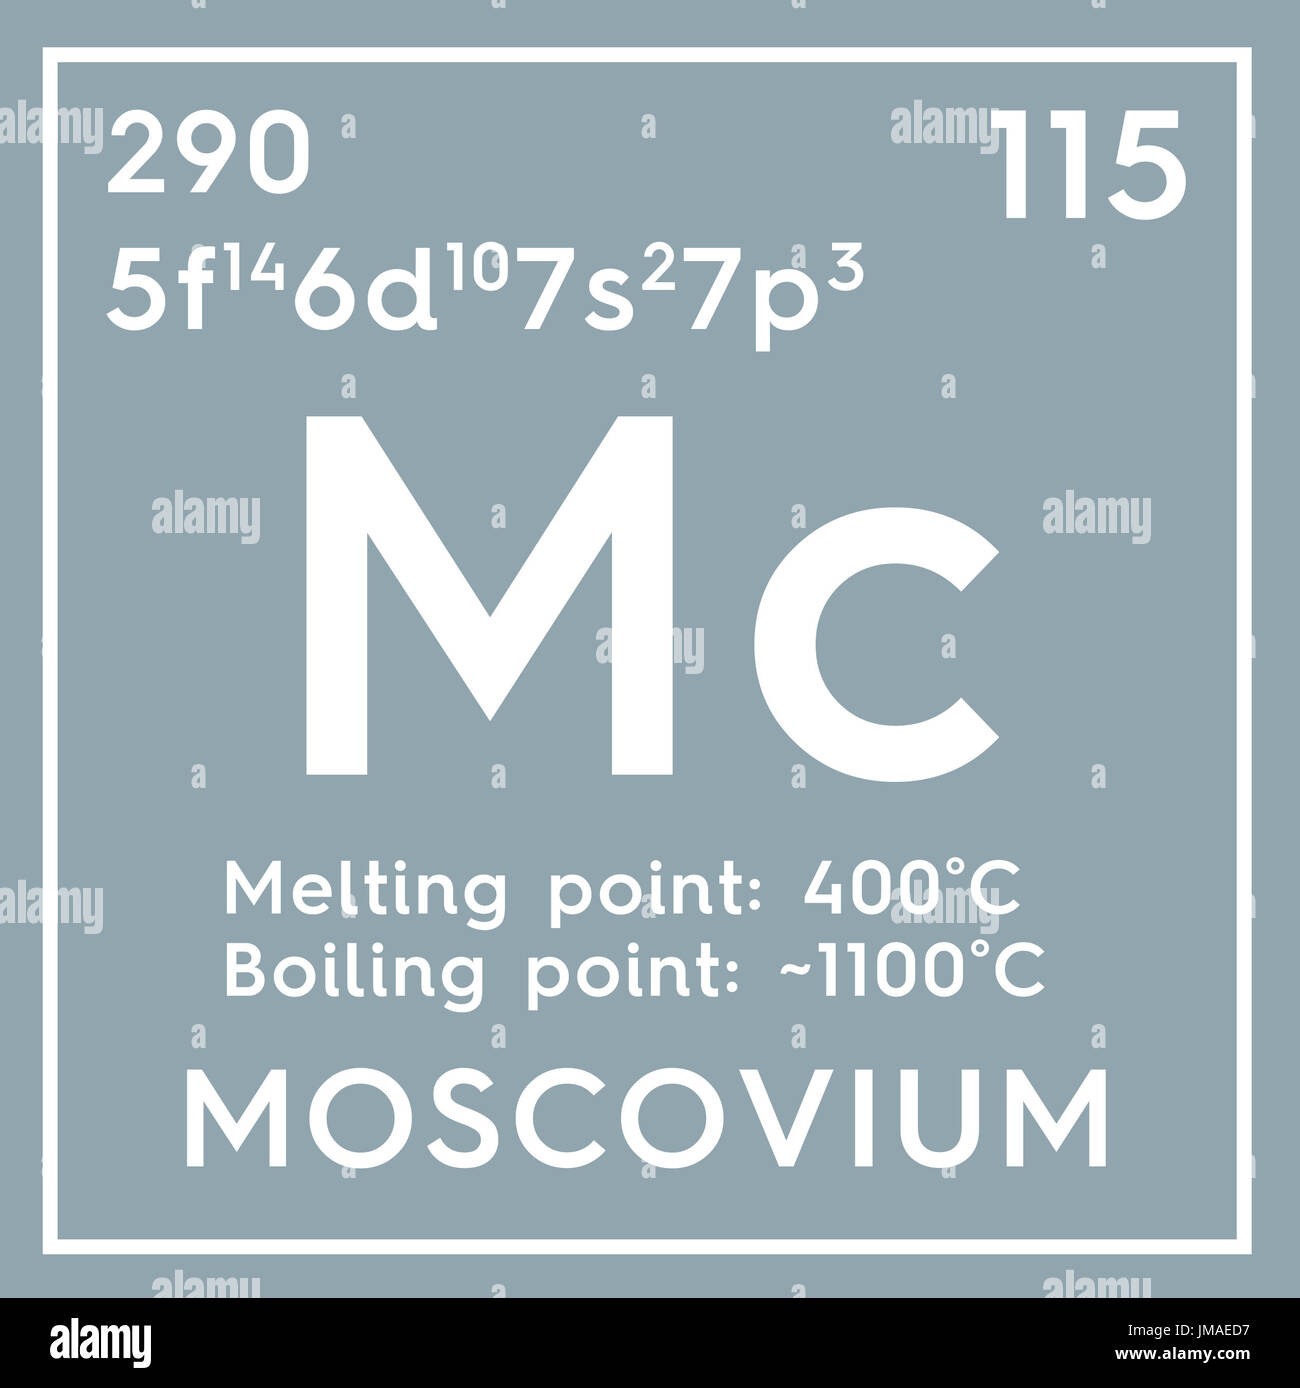 Moscovium post transition metals chemical element of mendeleevs moscovium post transition metals chemical element of mendeleevs periodic table moscovium in gamestrikefo Image collections